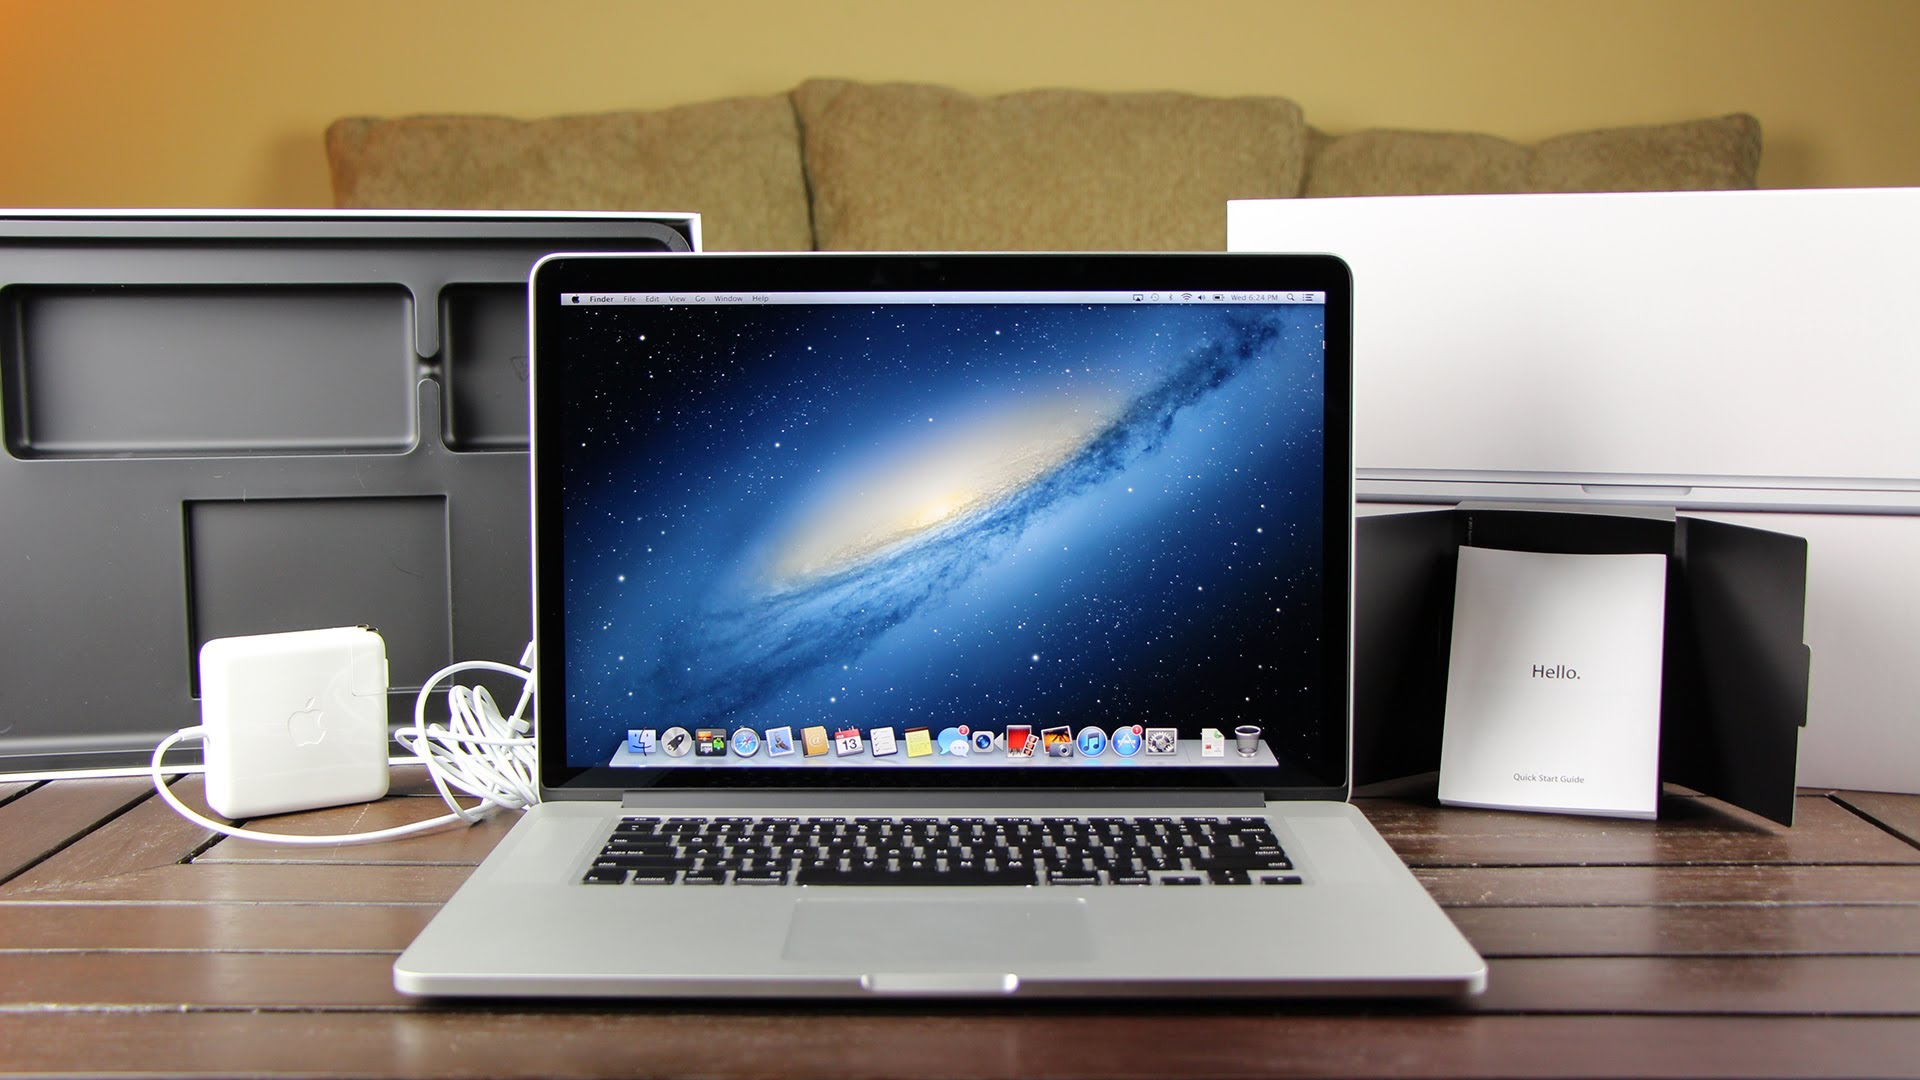 New Retina MacBook Pro: Unboxing 15 Inch and Overview (2013)